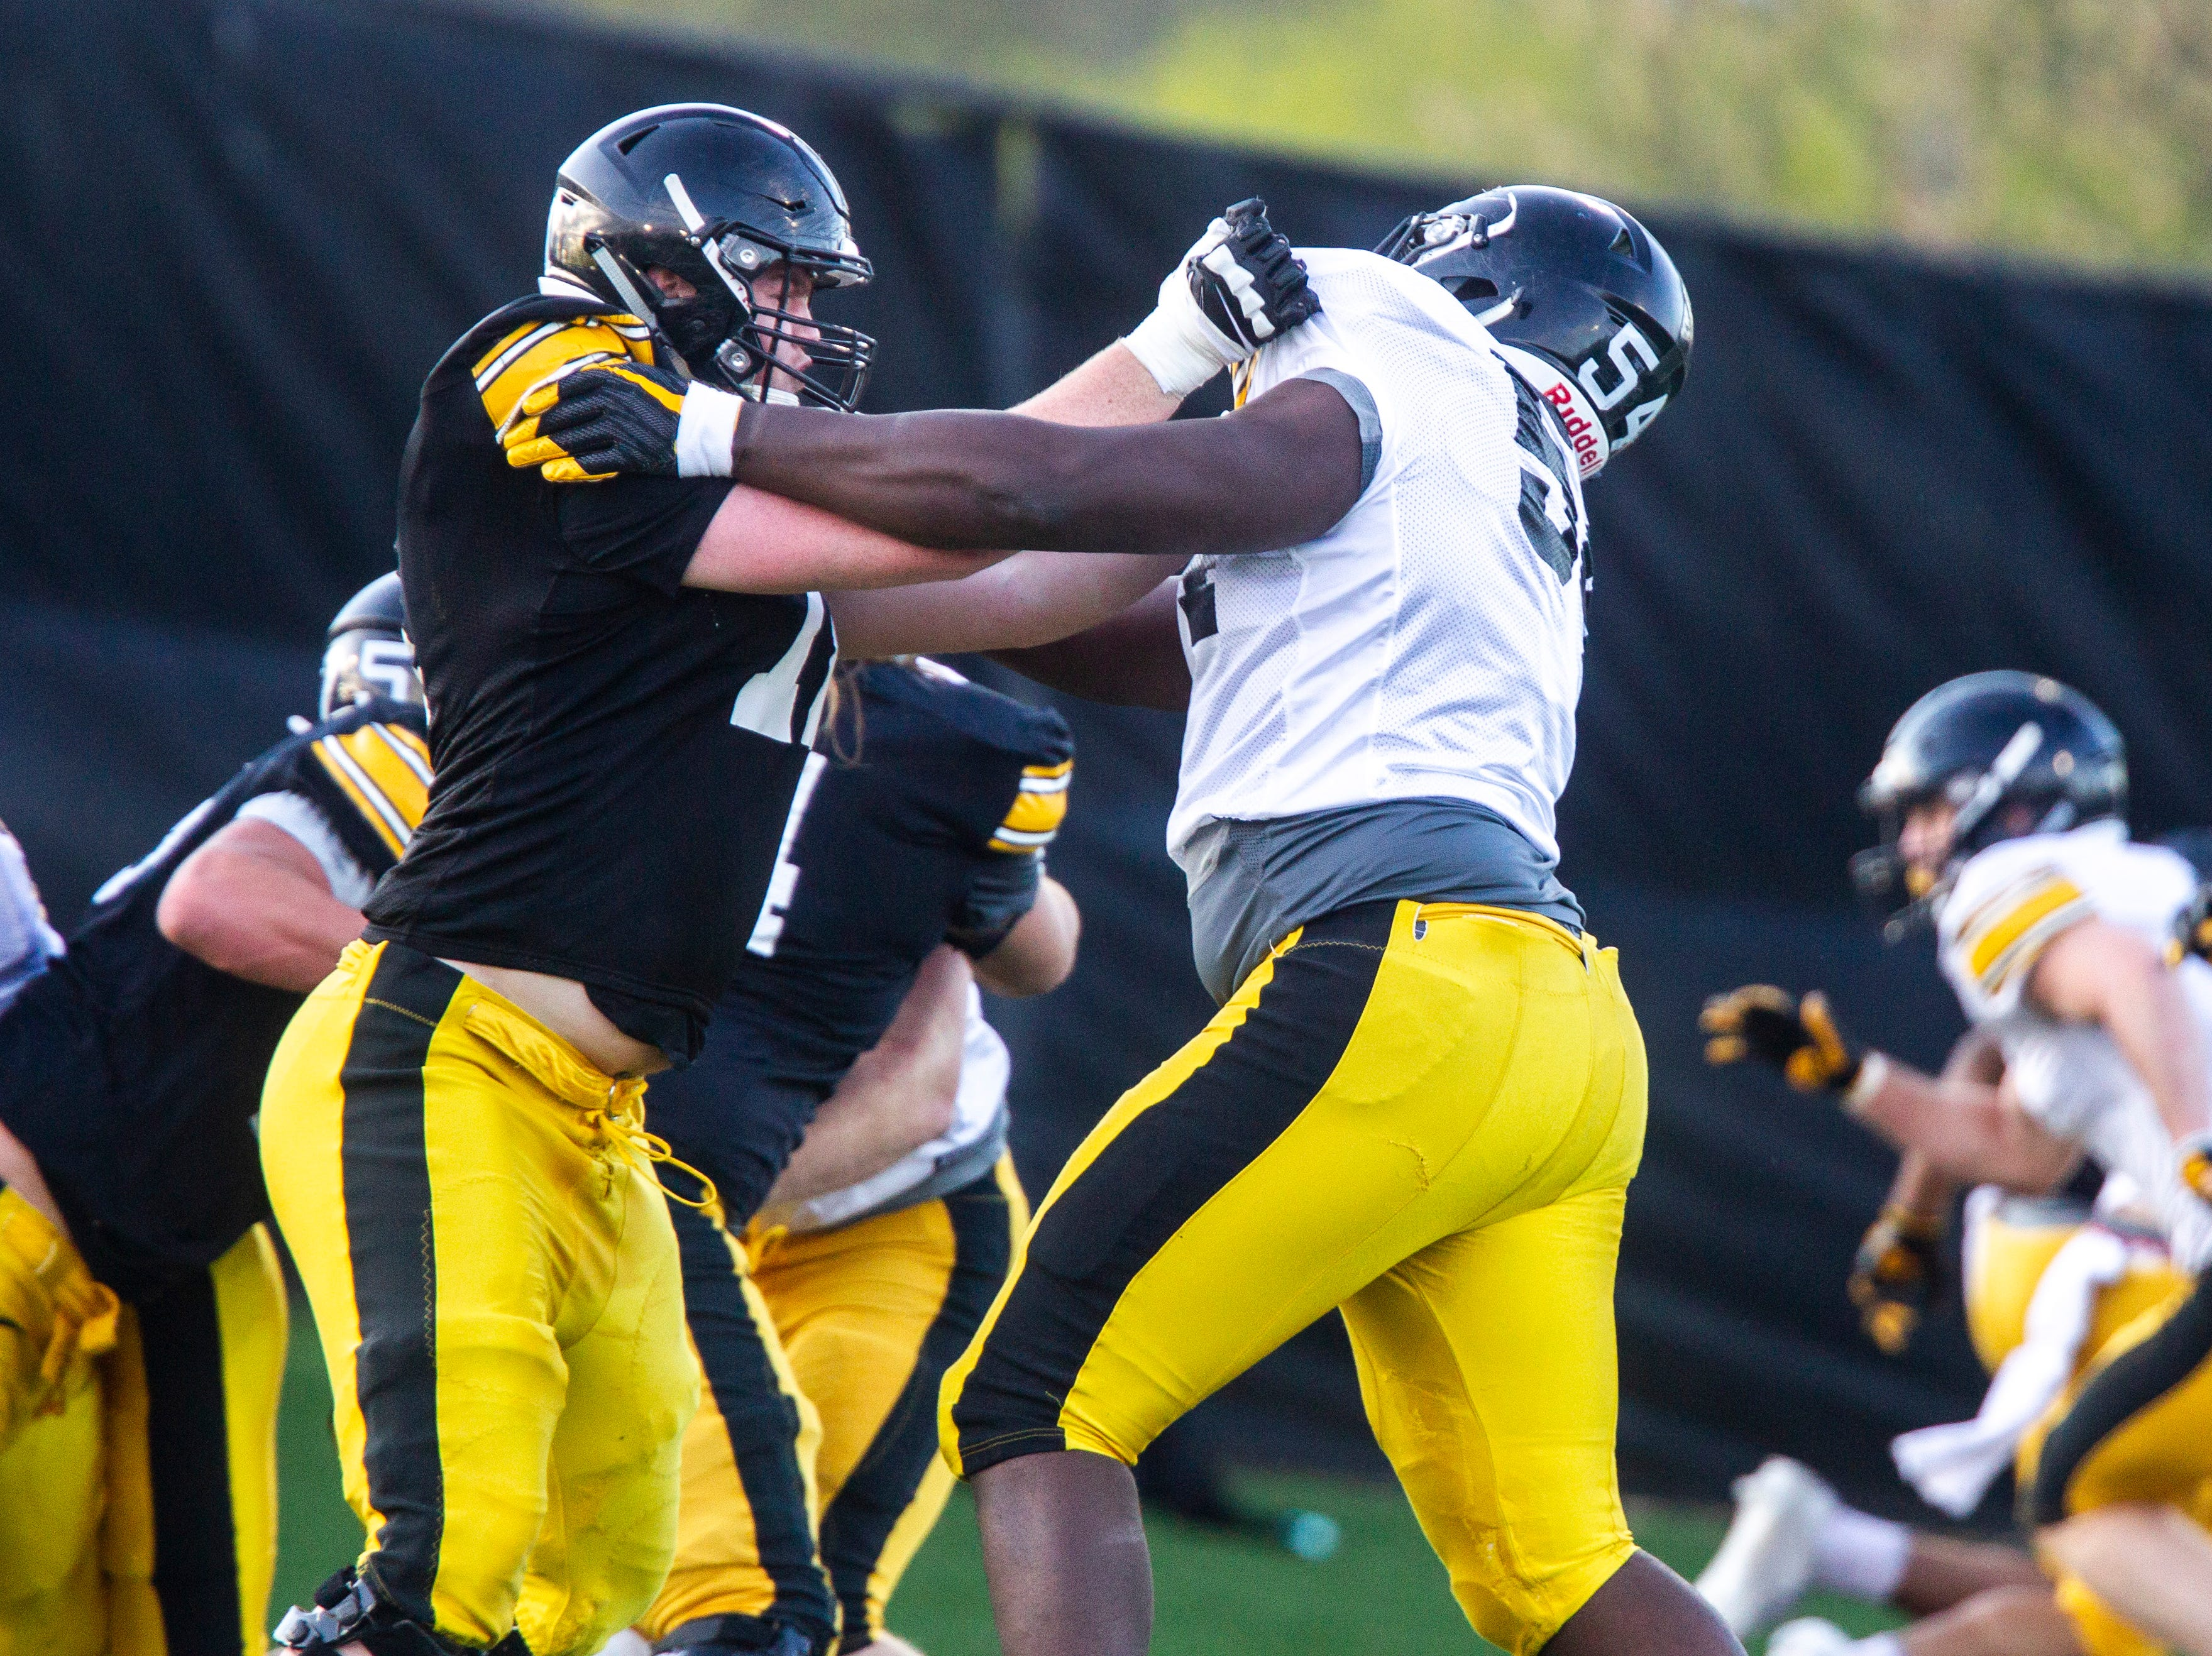 Iowa offensive lineman Mark Kallenberger (71) blocks against defensive tackle Daviyon Nixon (54) during the final spring football practice, Friday, April 26, 2019, at the University of Iowa outdoor practice facility in Iowa City, Iowa.